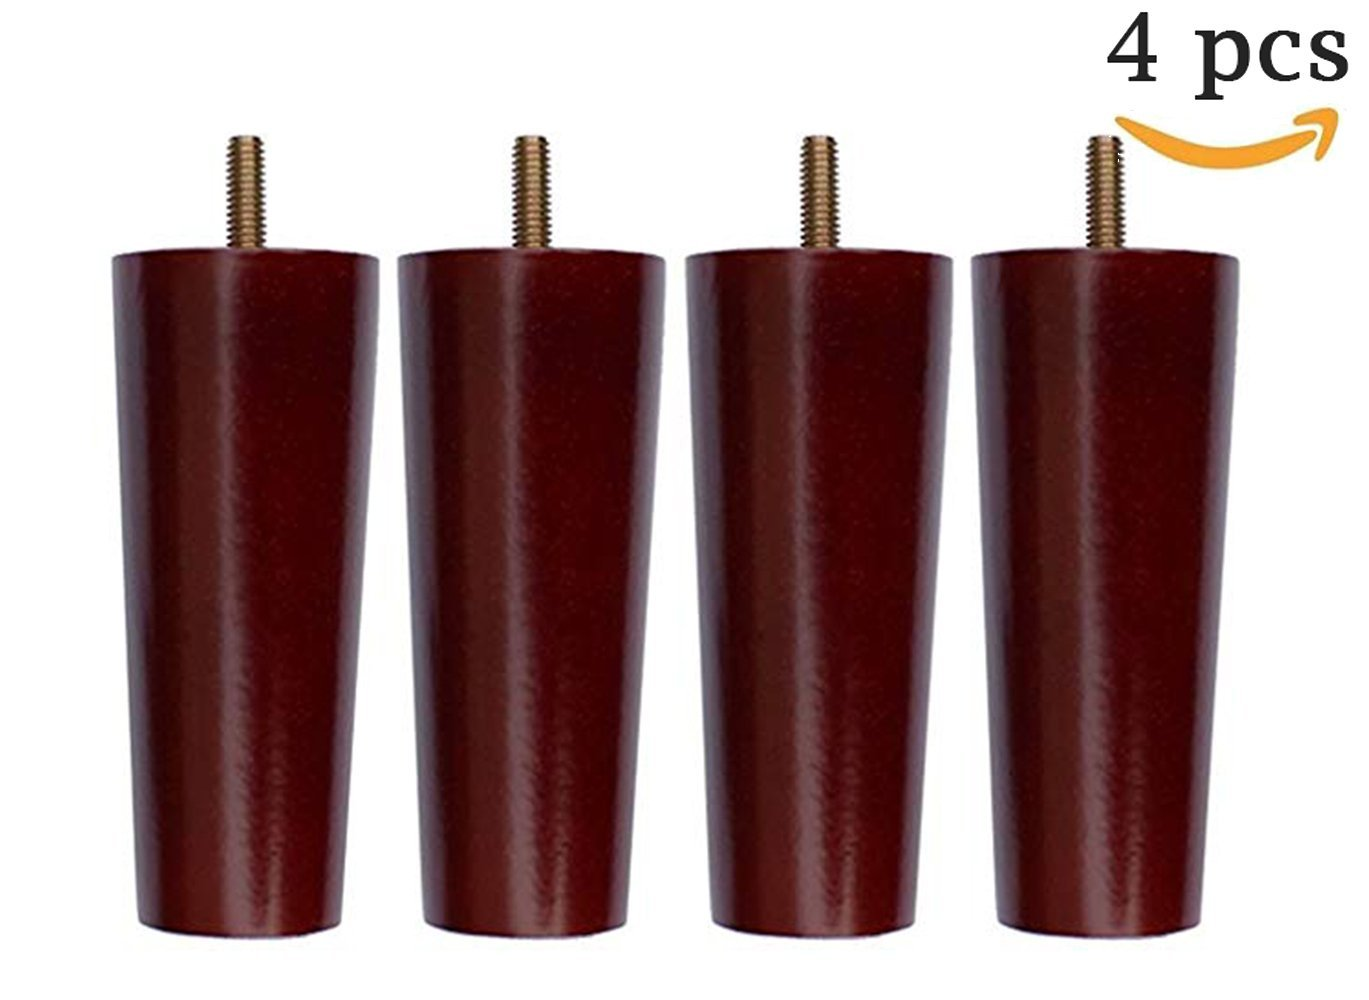 Vencroma Round Wooden Furniture Sofa Legs Modern Wood Solid Tapered Sofa Couch Legs Sofa Legs Replacement, Set of 4